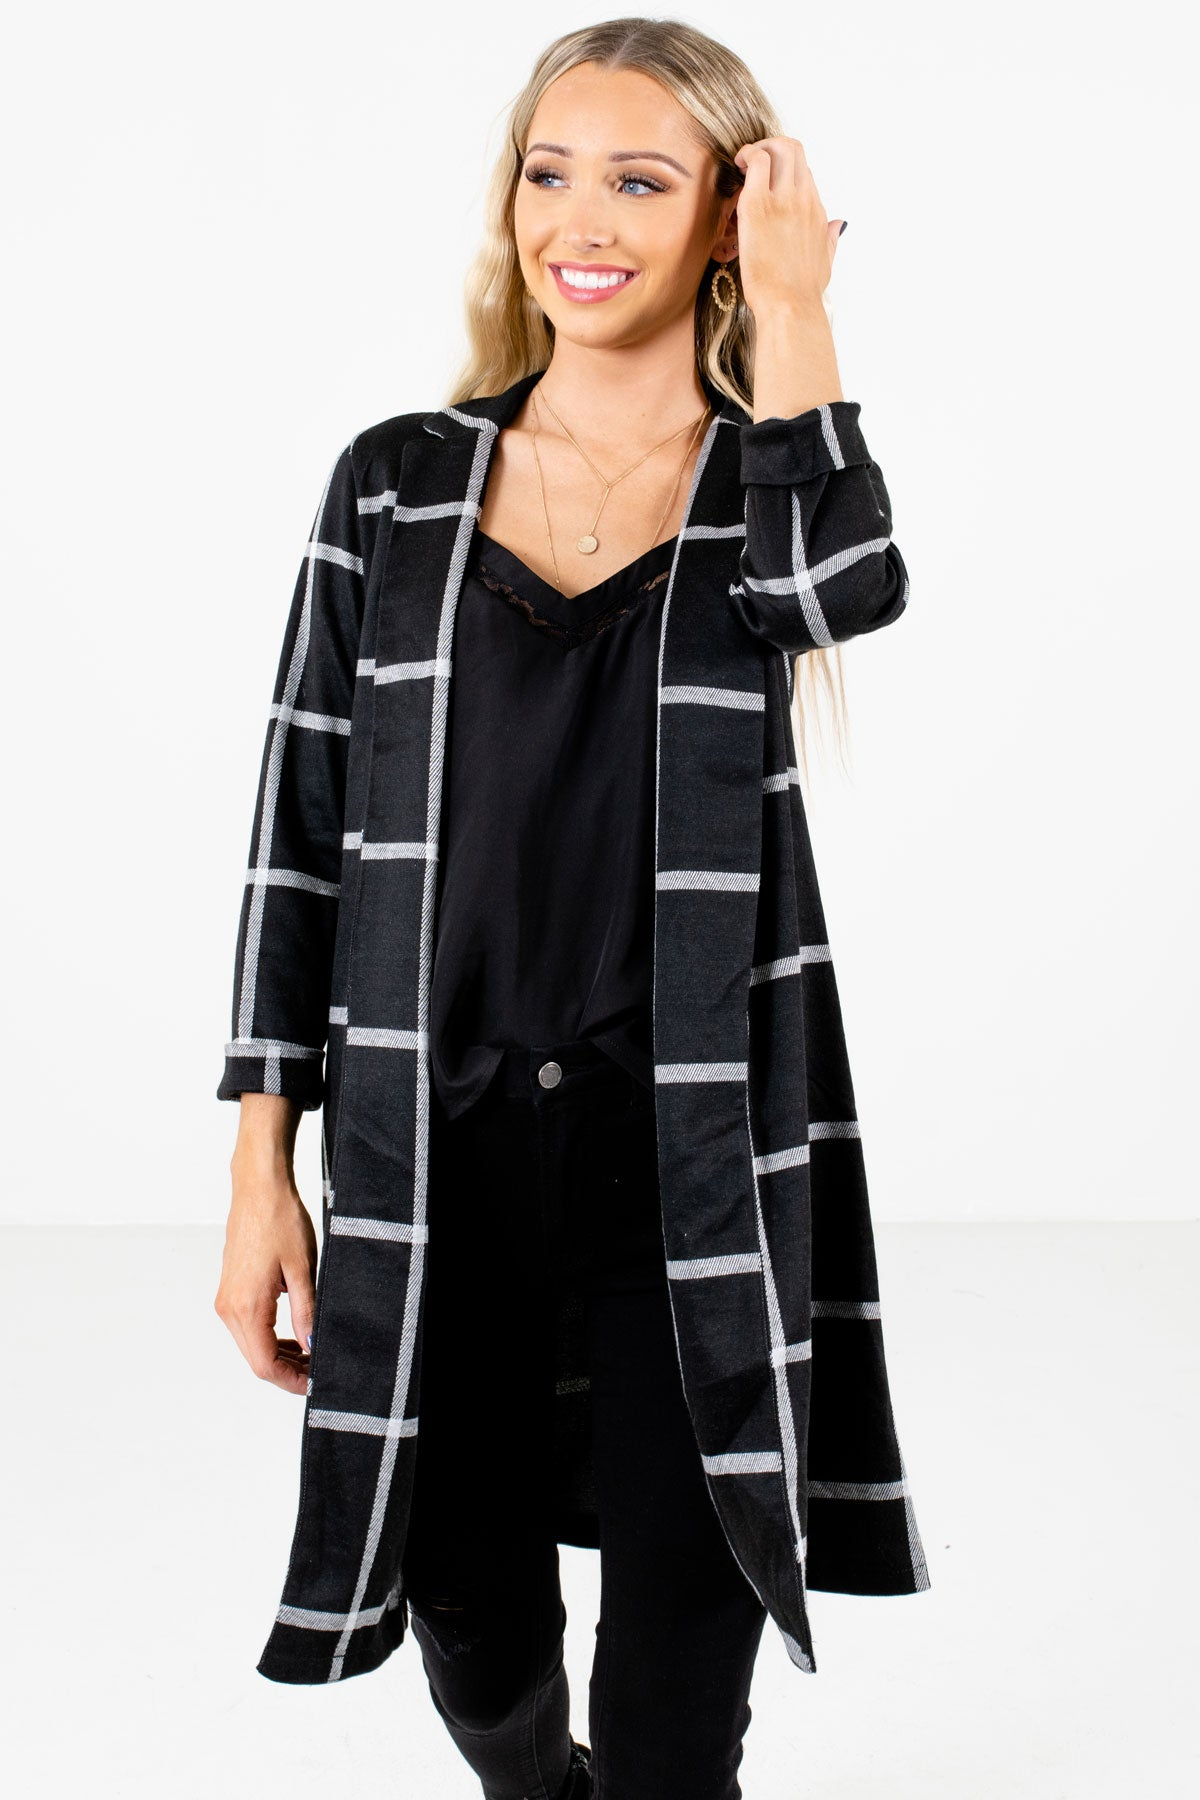 Black and White Plaid Patterned Boutique Blazers for Women